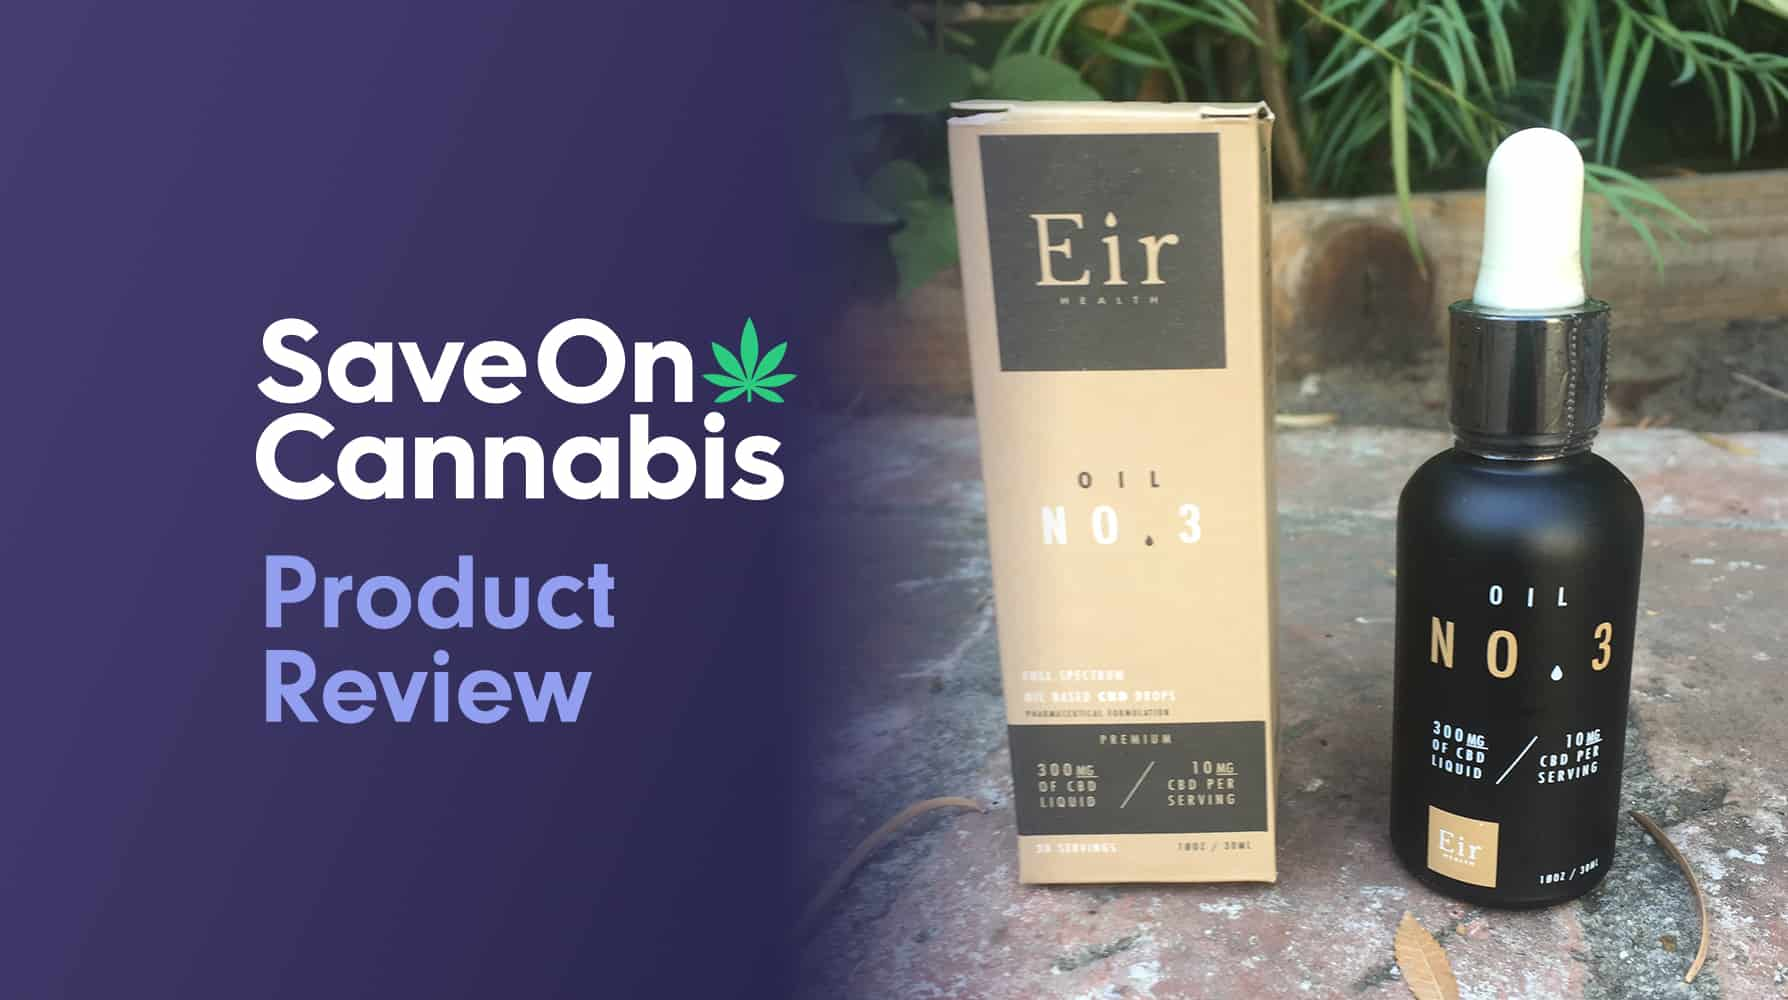 Cbd Review Eir Health Oil N0 3 300 Mg Low Potency Cbd